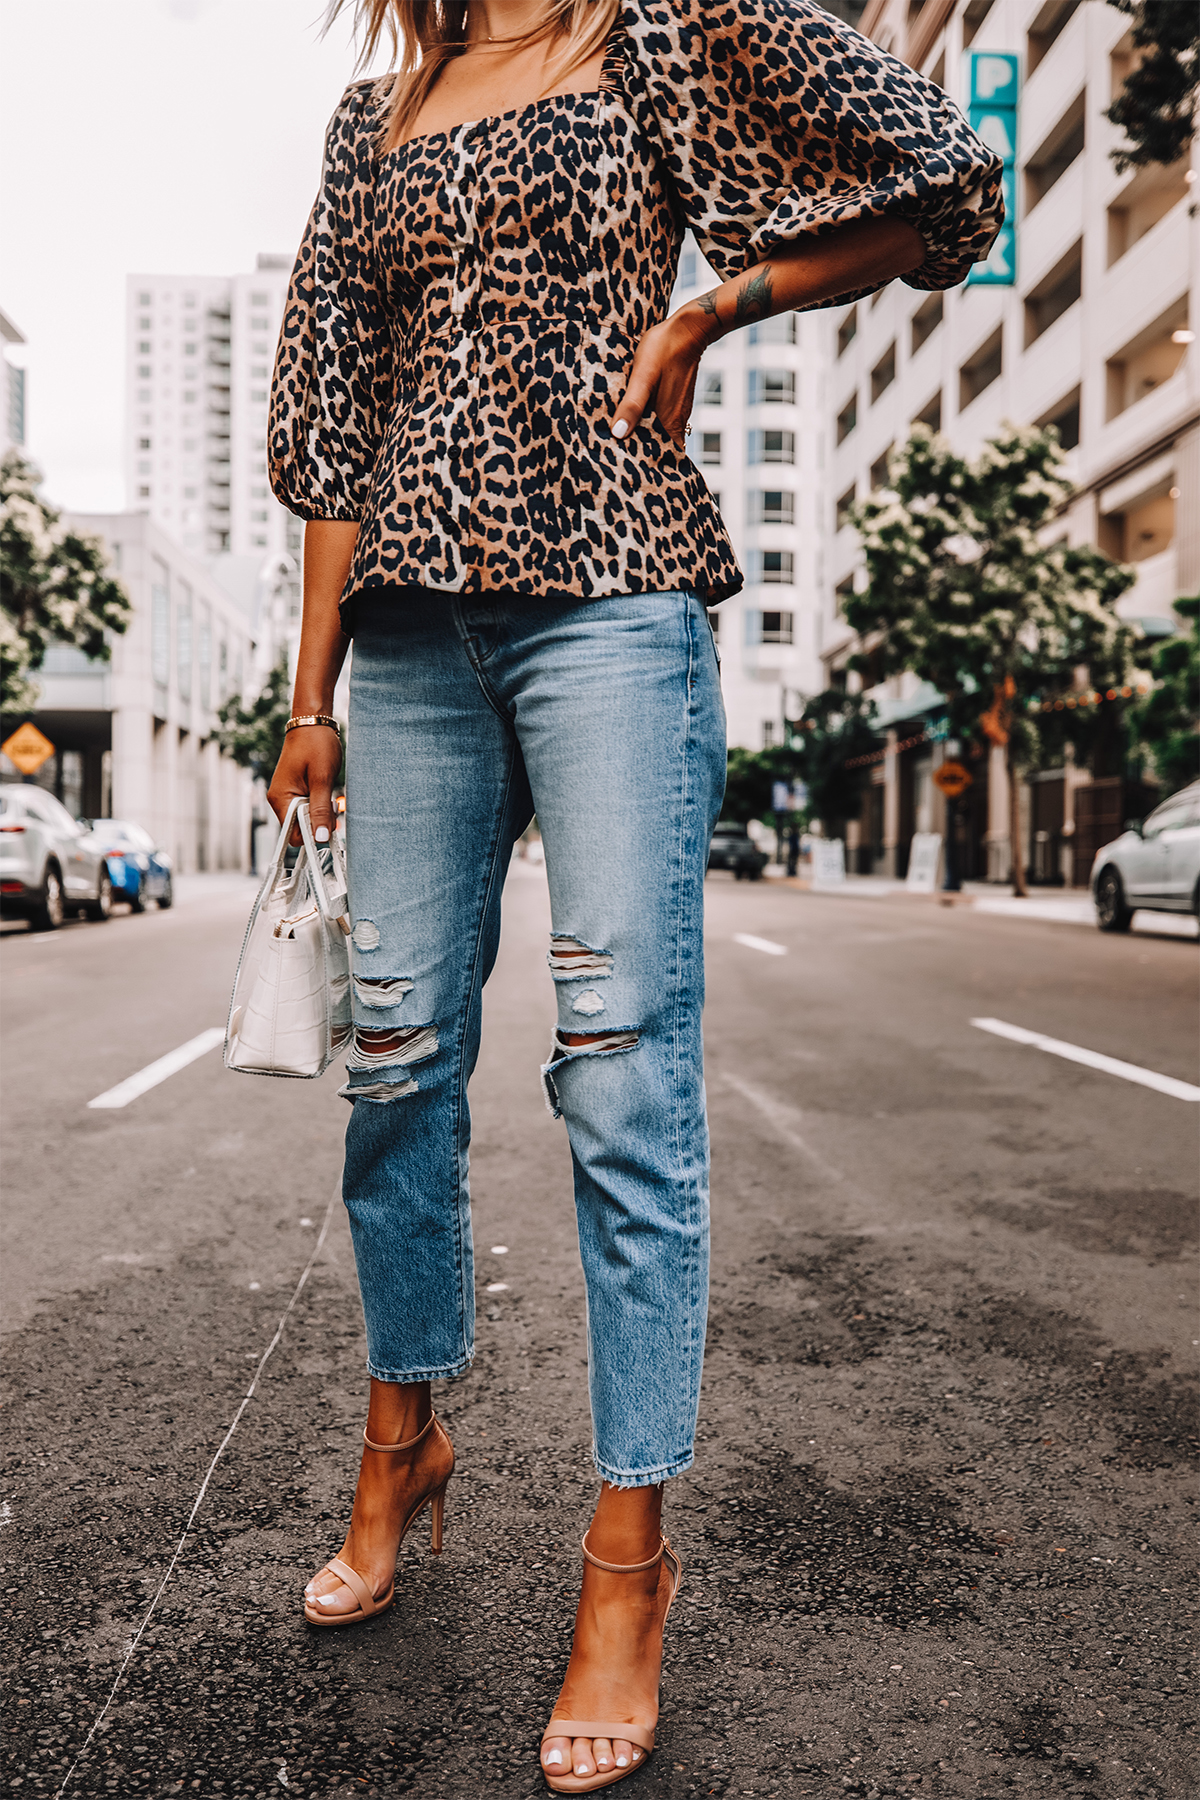 Fashion Jackson Wearing Ganni Leopard Top Frame Ripped Mom Jeans Nude Heeled Sandals